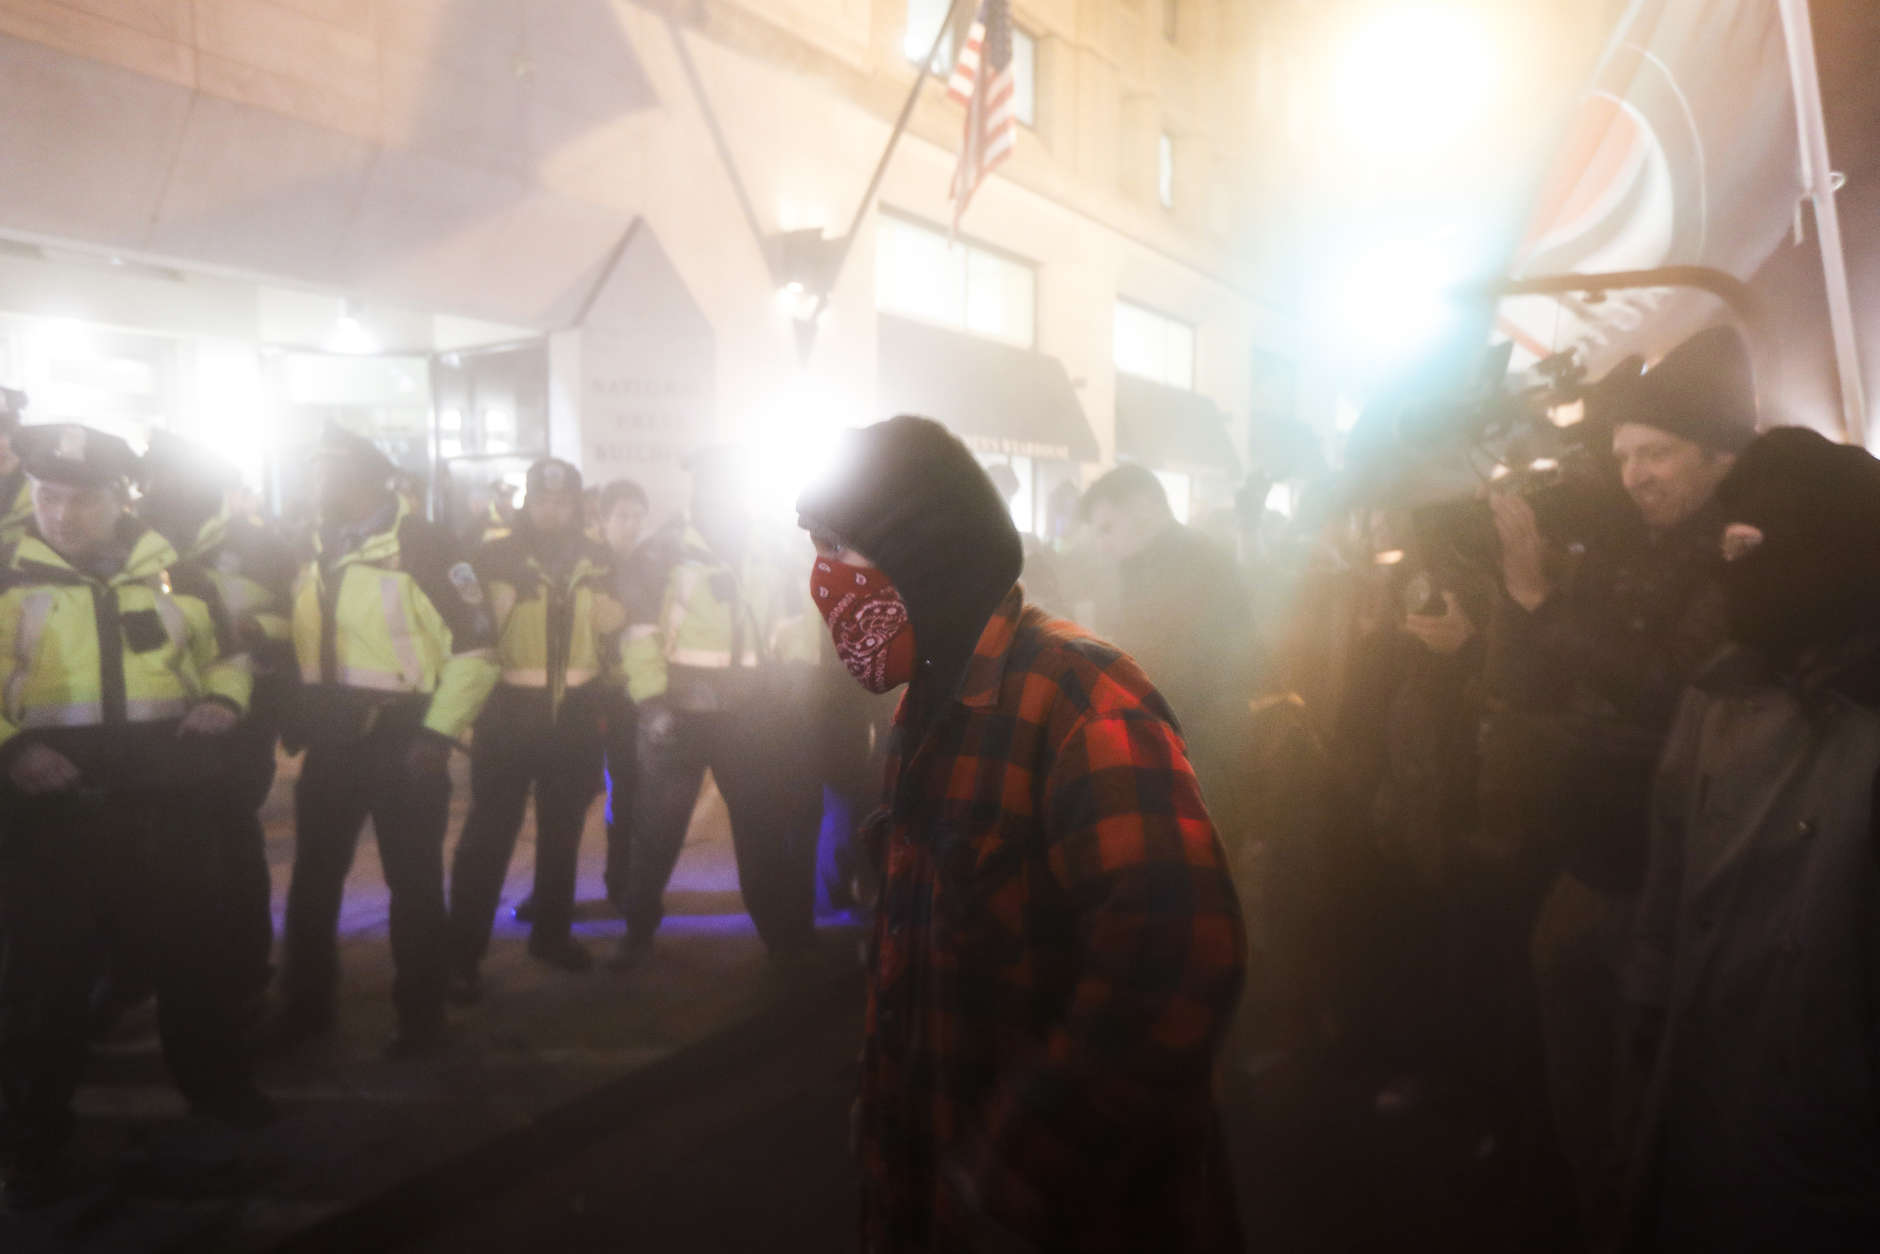 A protester walks through a cloud of gas sprayed by police following outside the National Press Club Thursday, Jan. 19, 2017, in Washington. (AP Photo/John Minchillo)